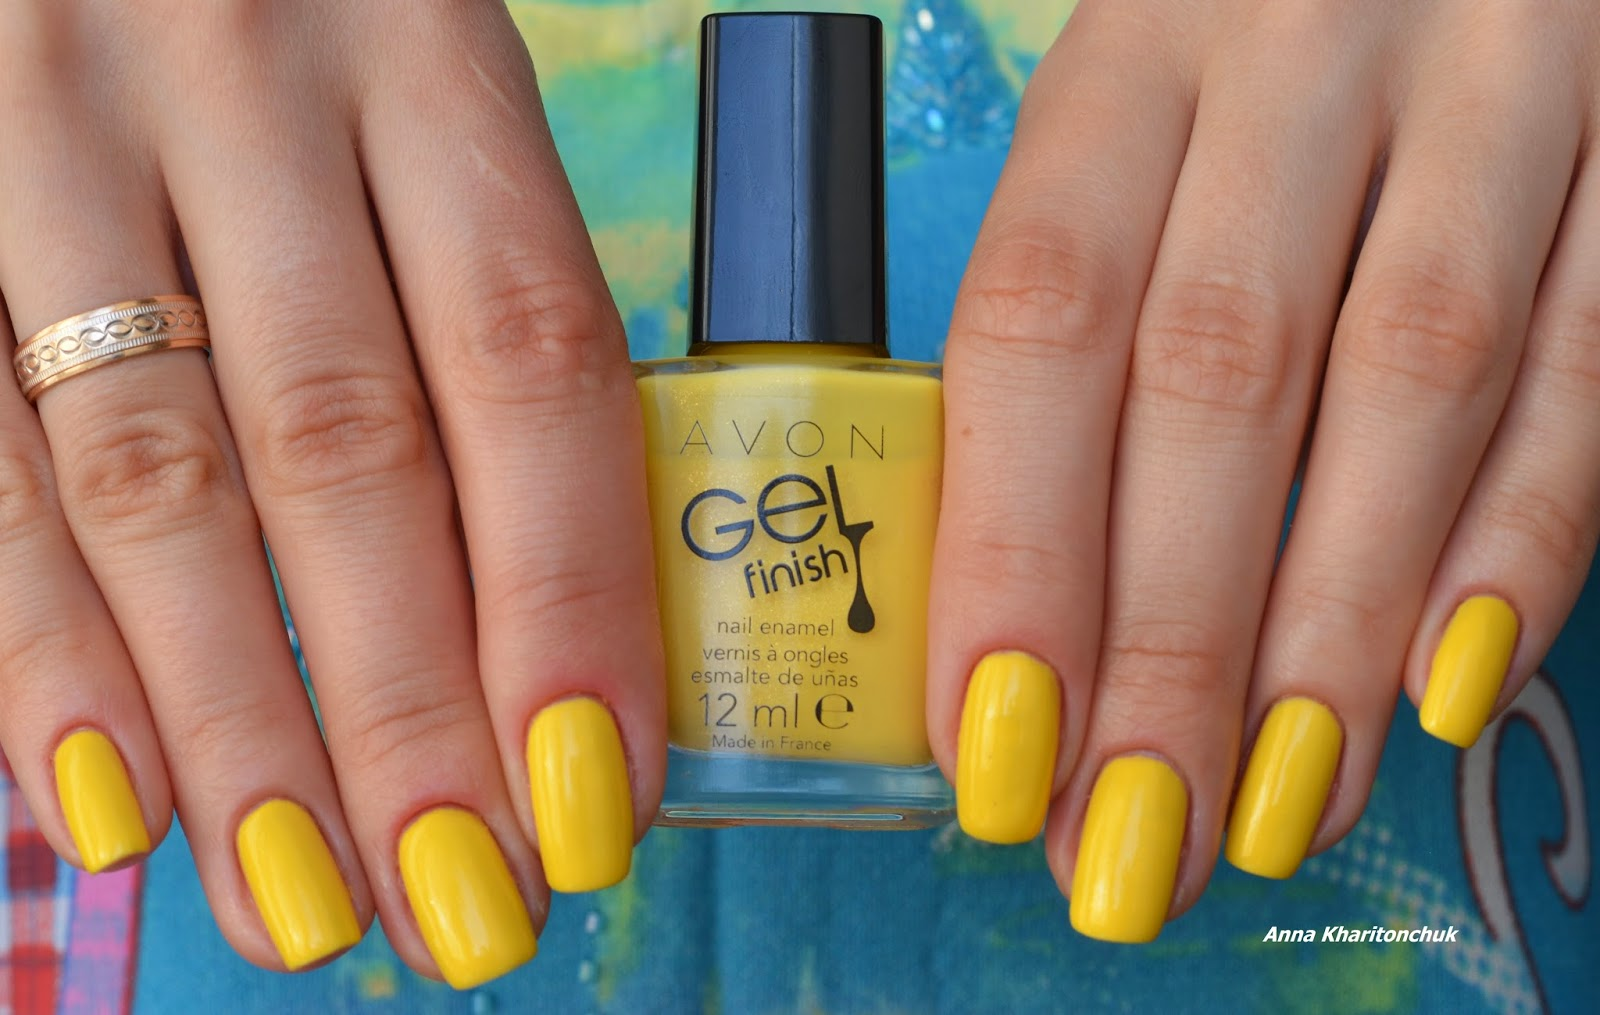 Avon Gel Finish Limoncello